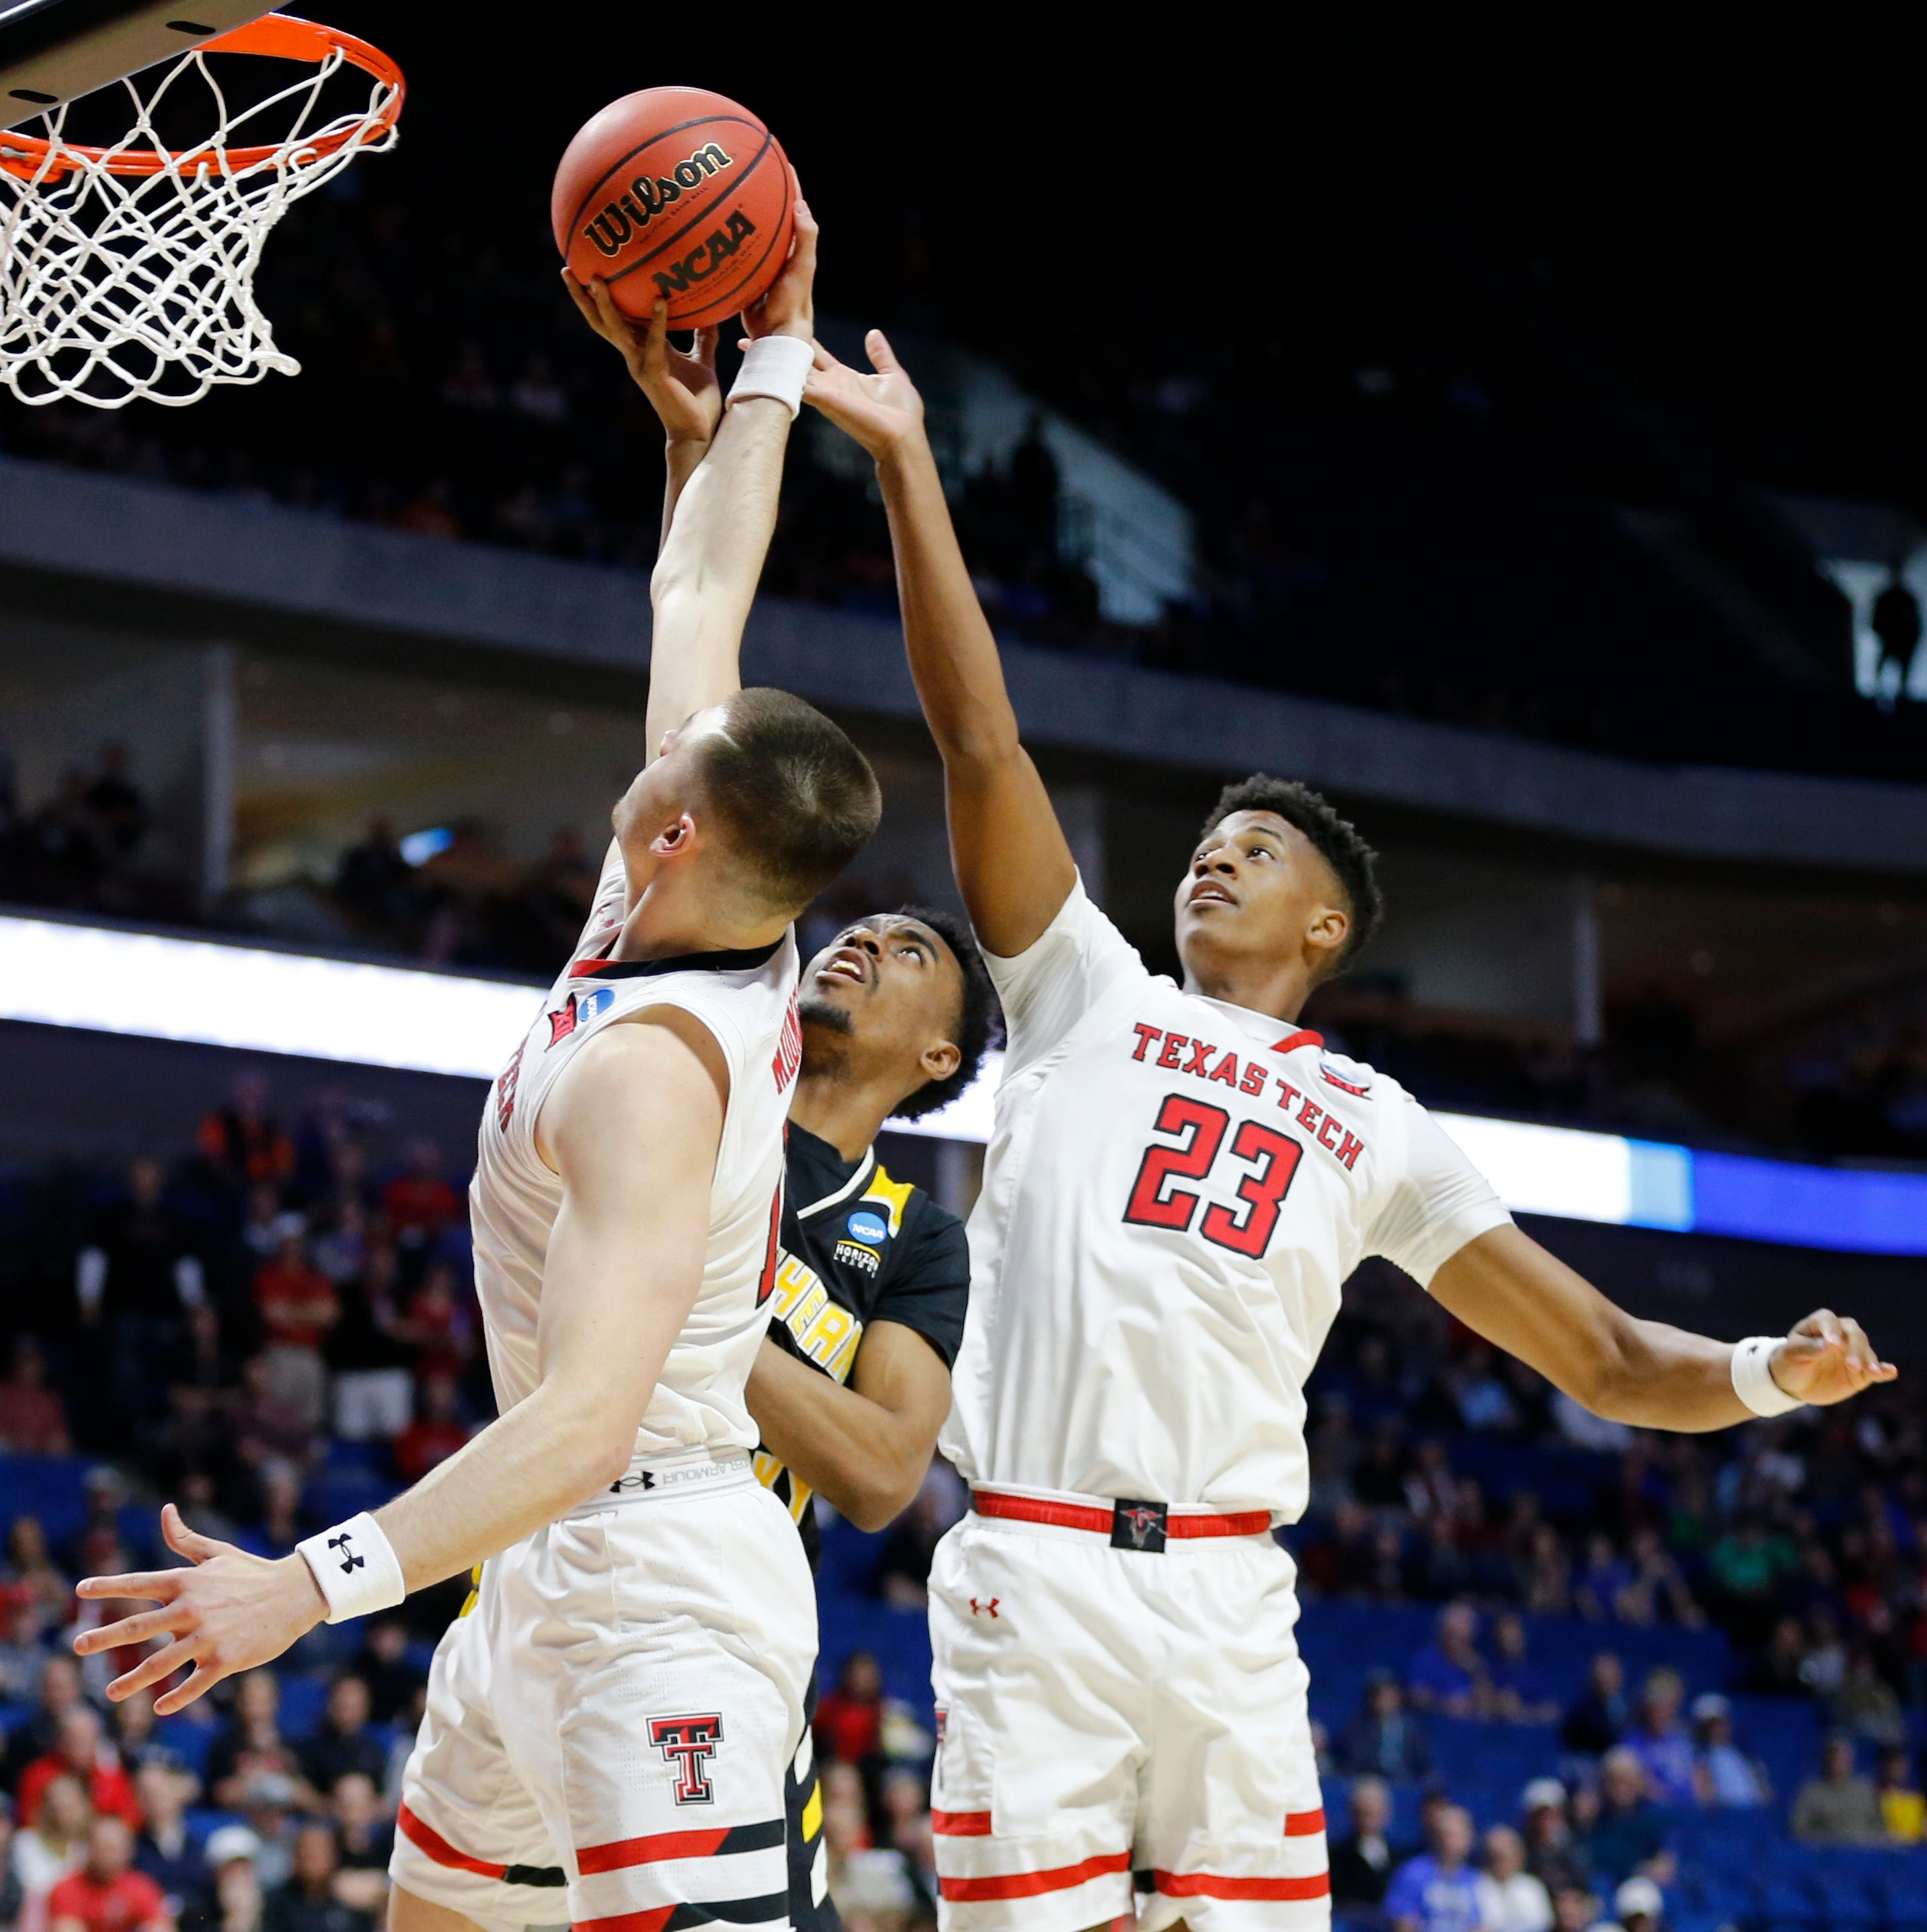 March Madness 2019: Texas Tech's Odiase, Owens block Northern Kentucky's upset bid